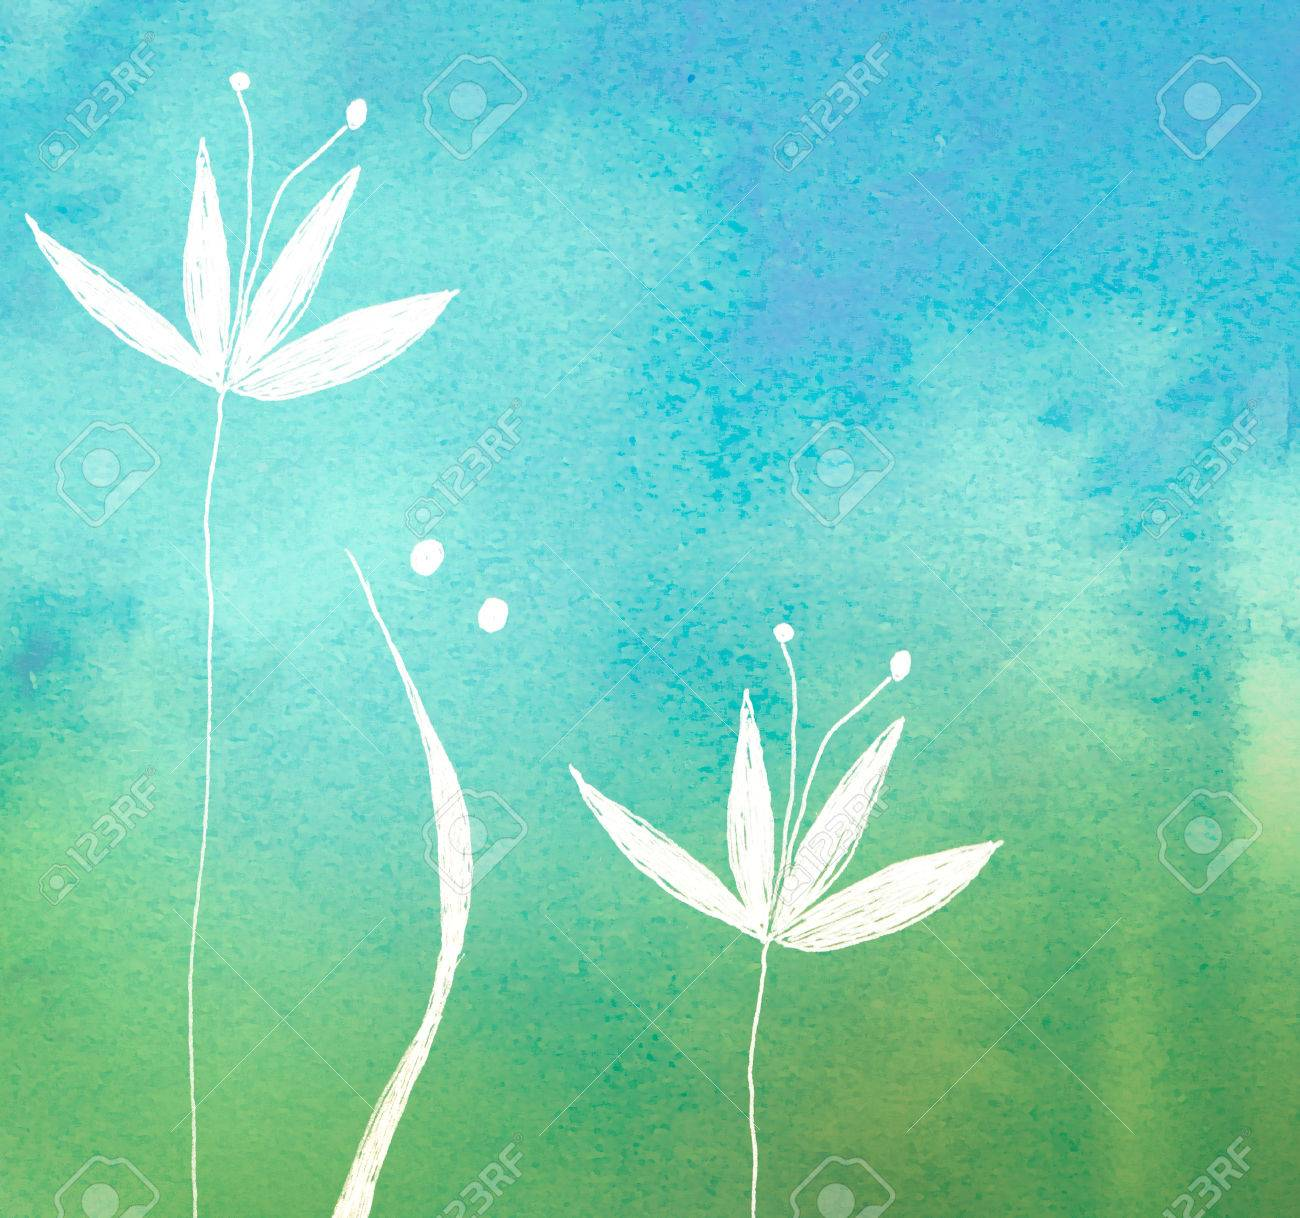 Poetry background stock photos royalty free poetry background images white flower on green painted watercolor background stock photo izmirmasajfo